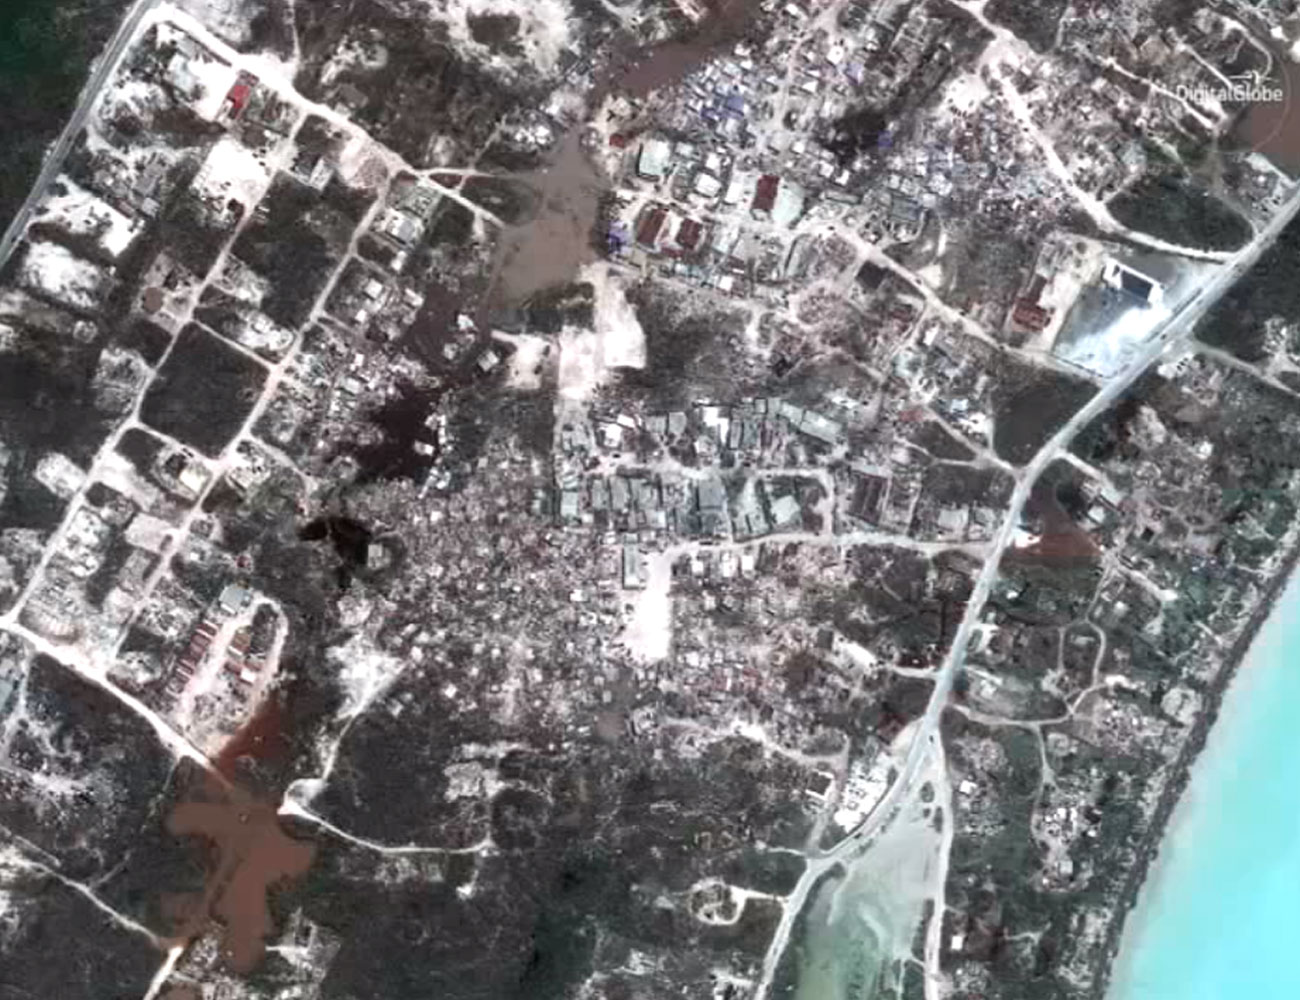 <div class='meta'><div class='origin-logo' data-origin='none'></div><span class='caption-text' data-credit='DigitalGlobe'>Turks and Caicos Islands - September 11, 2017</span></div>